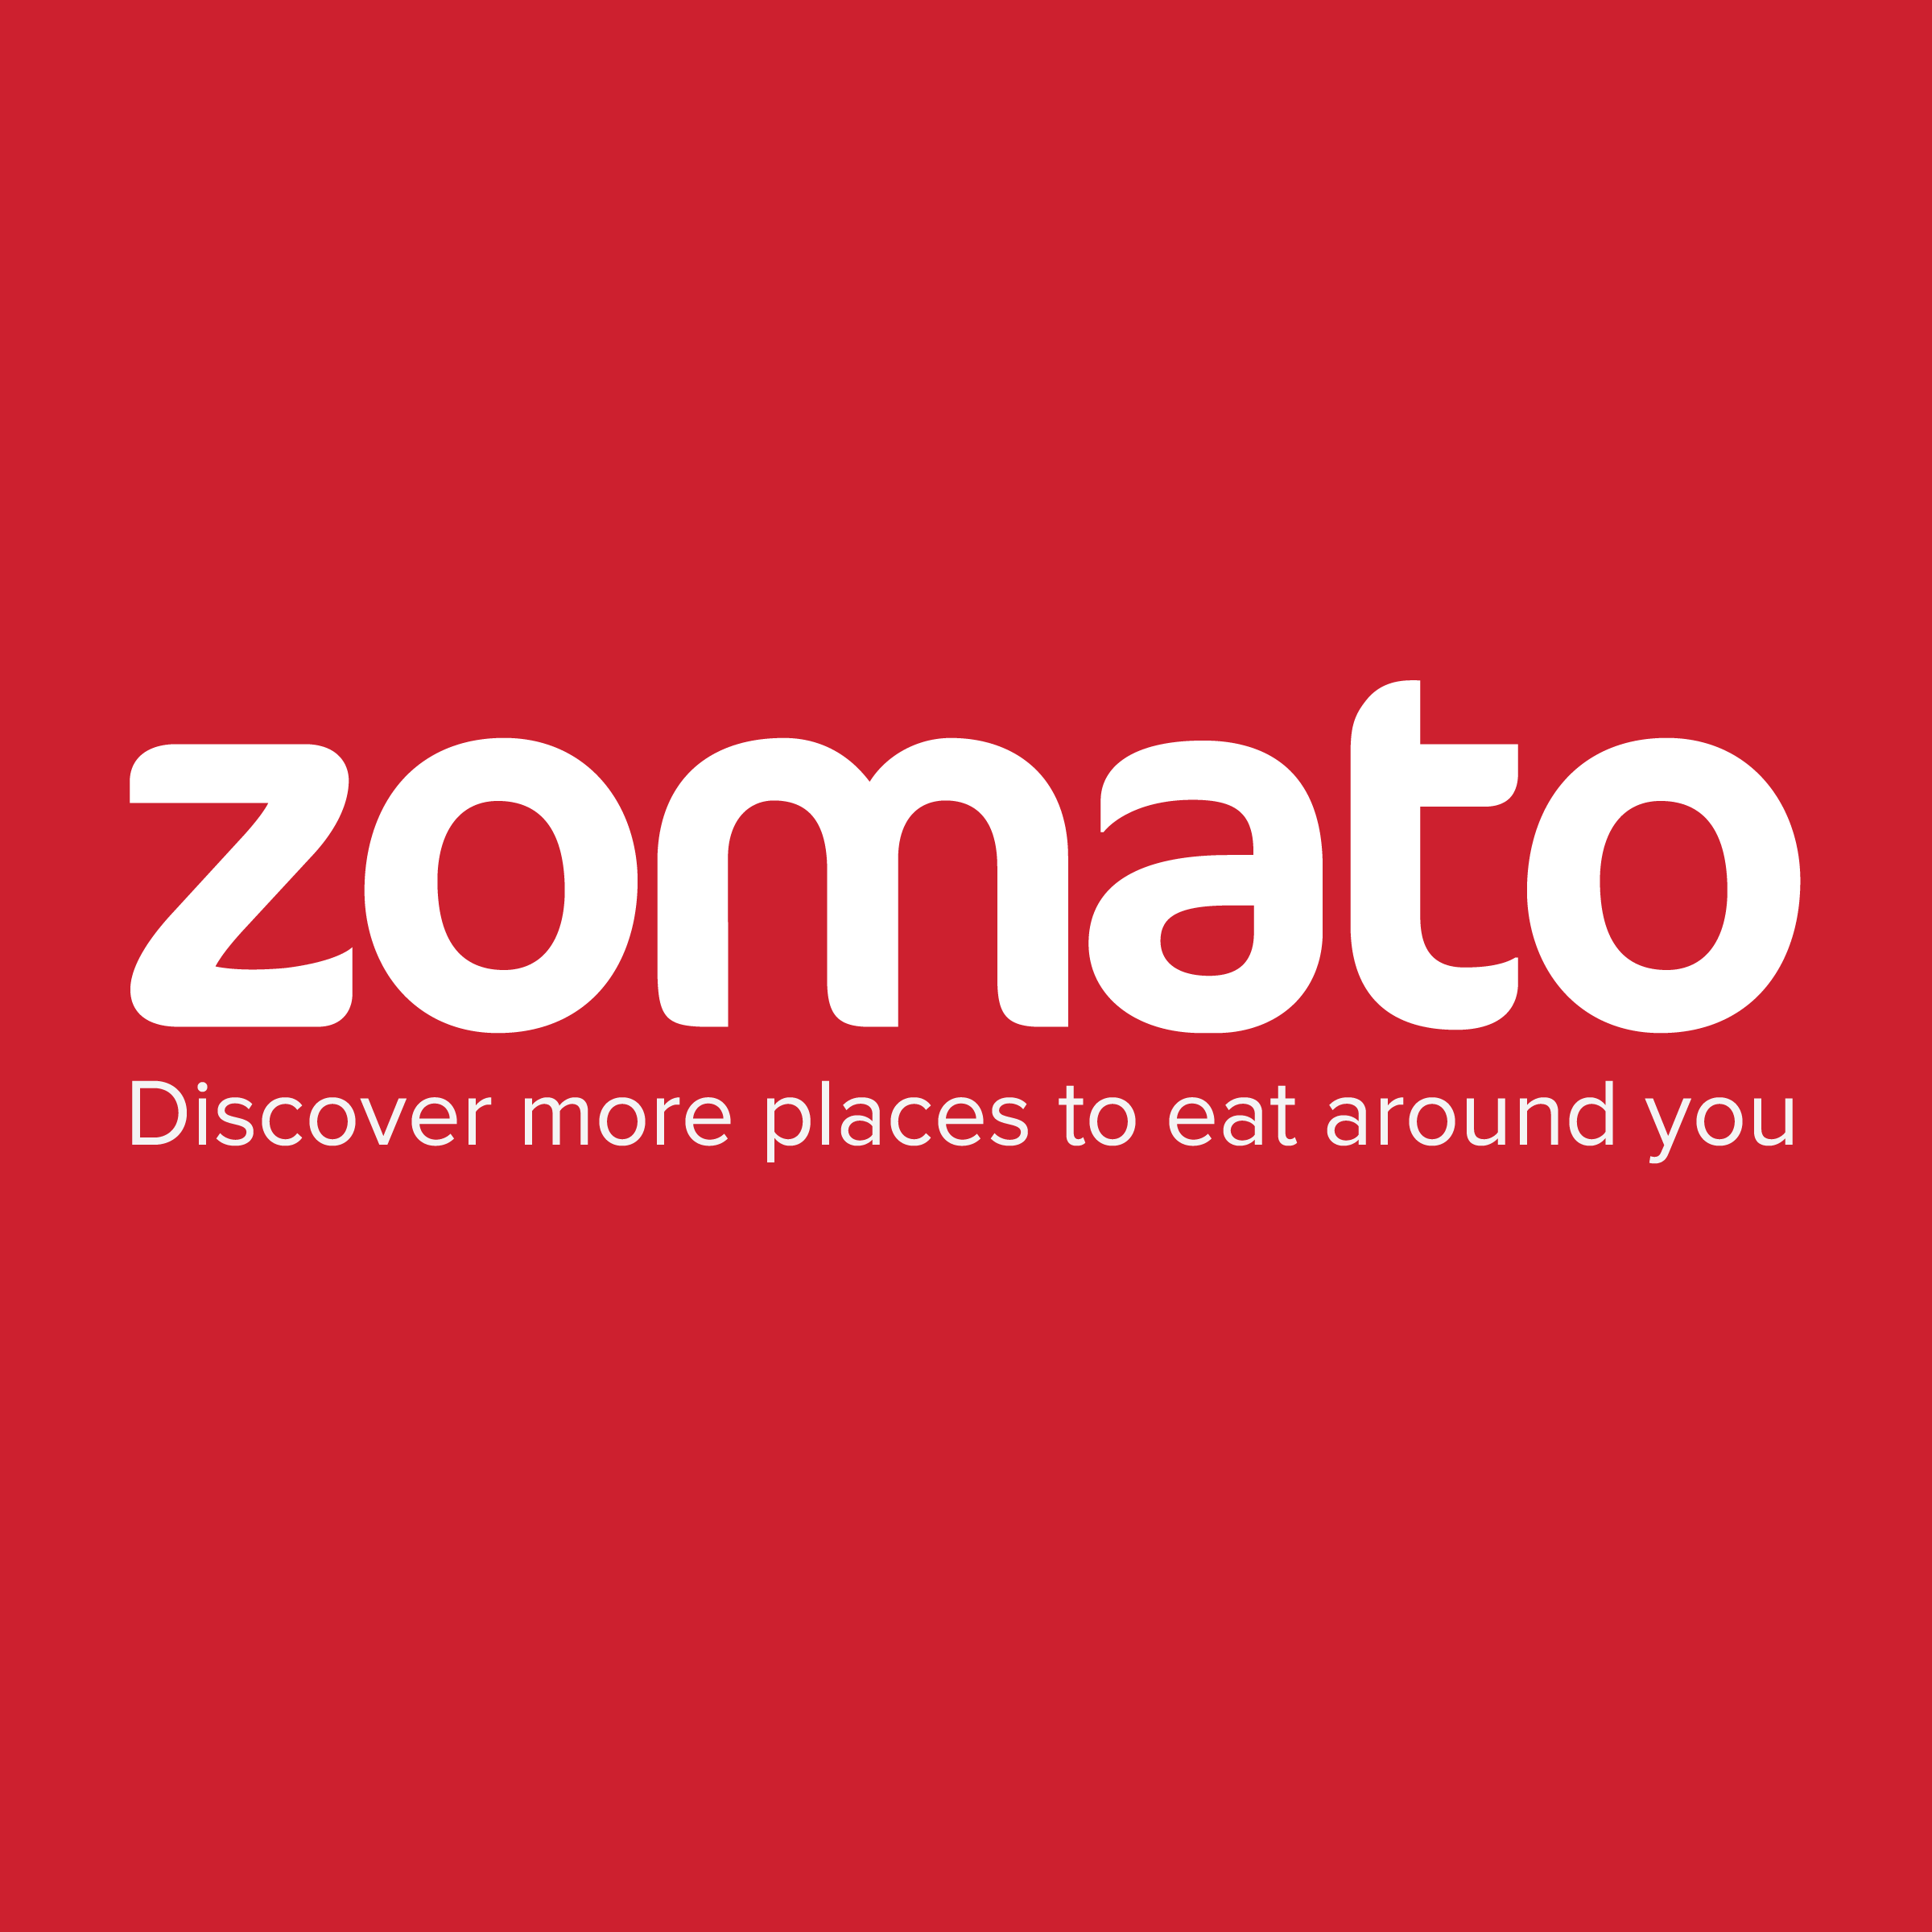 All Hail Zomato!